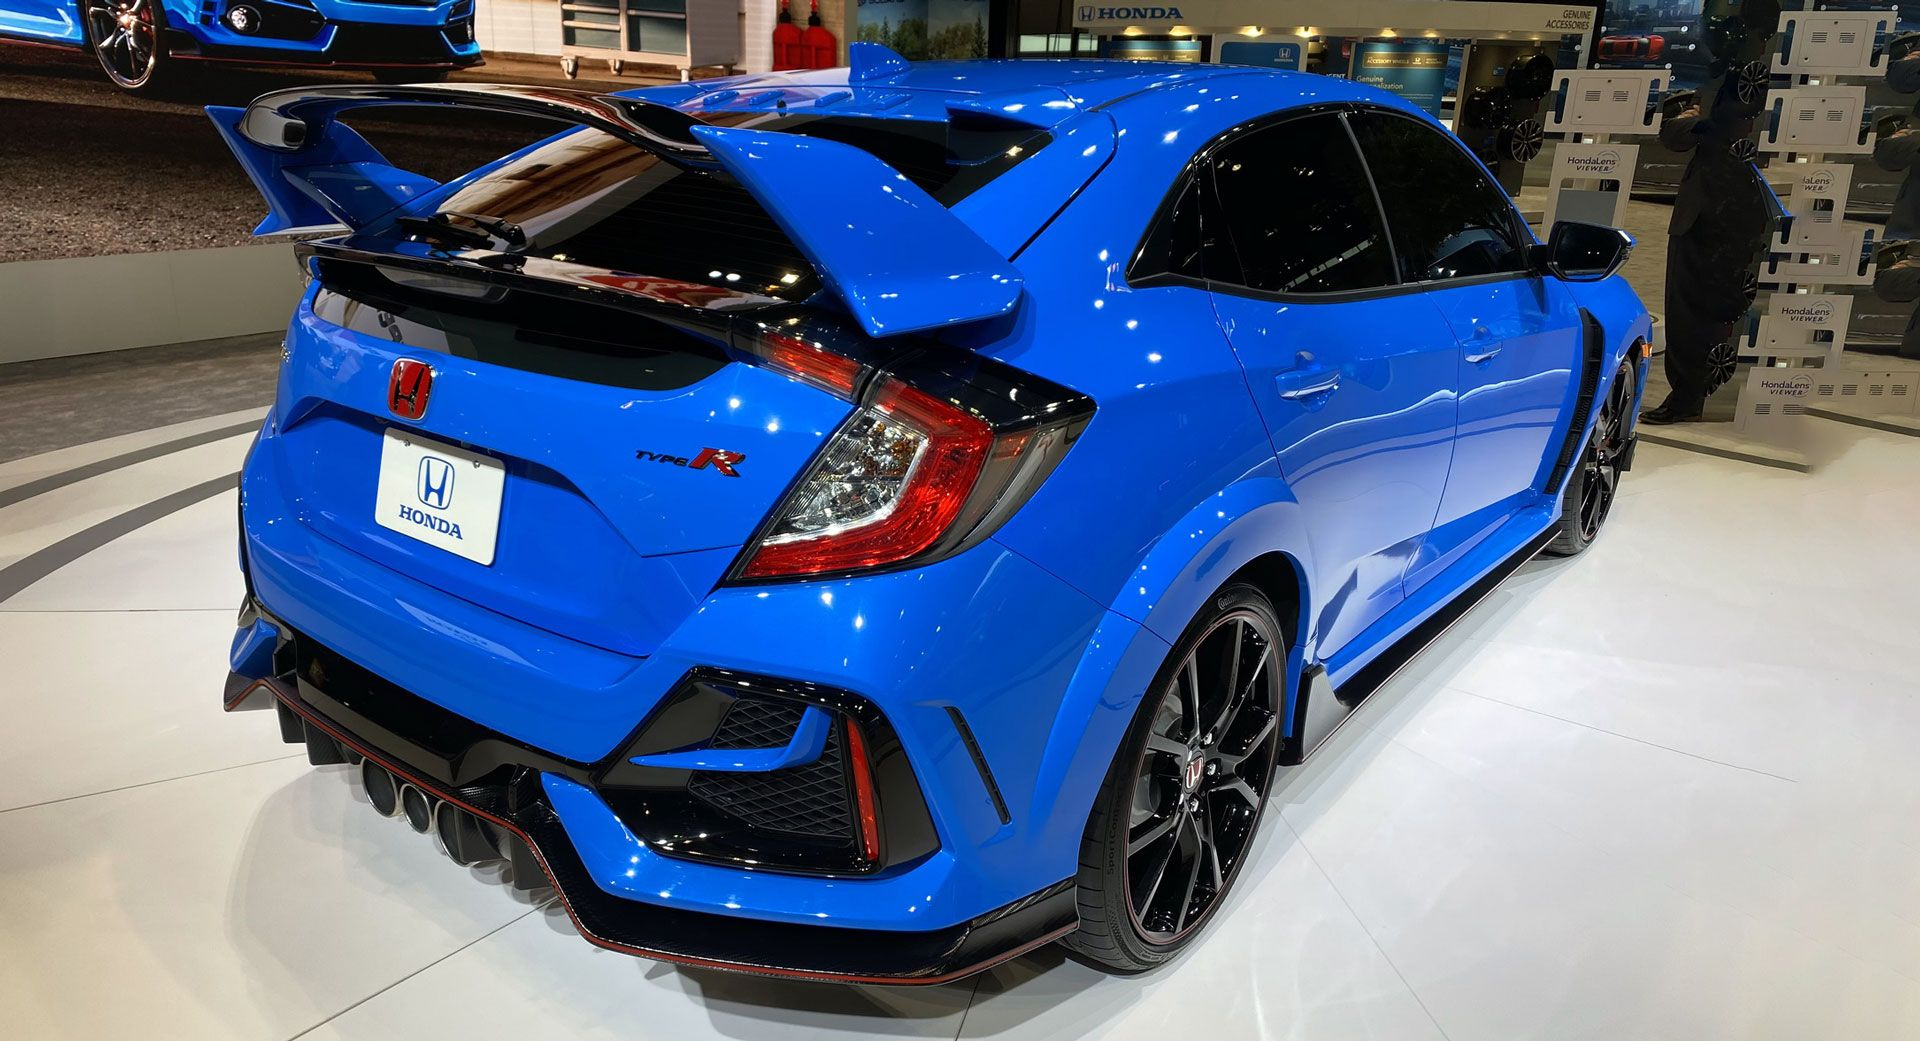 2020 Honda Civic Type R Arrives In America With Minor Styling, Chassis Tweaks And A Boost Blue Color | Carscoops